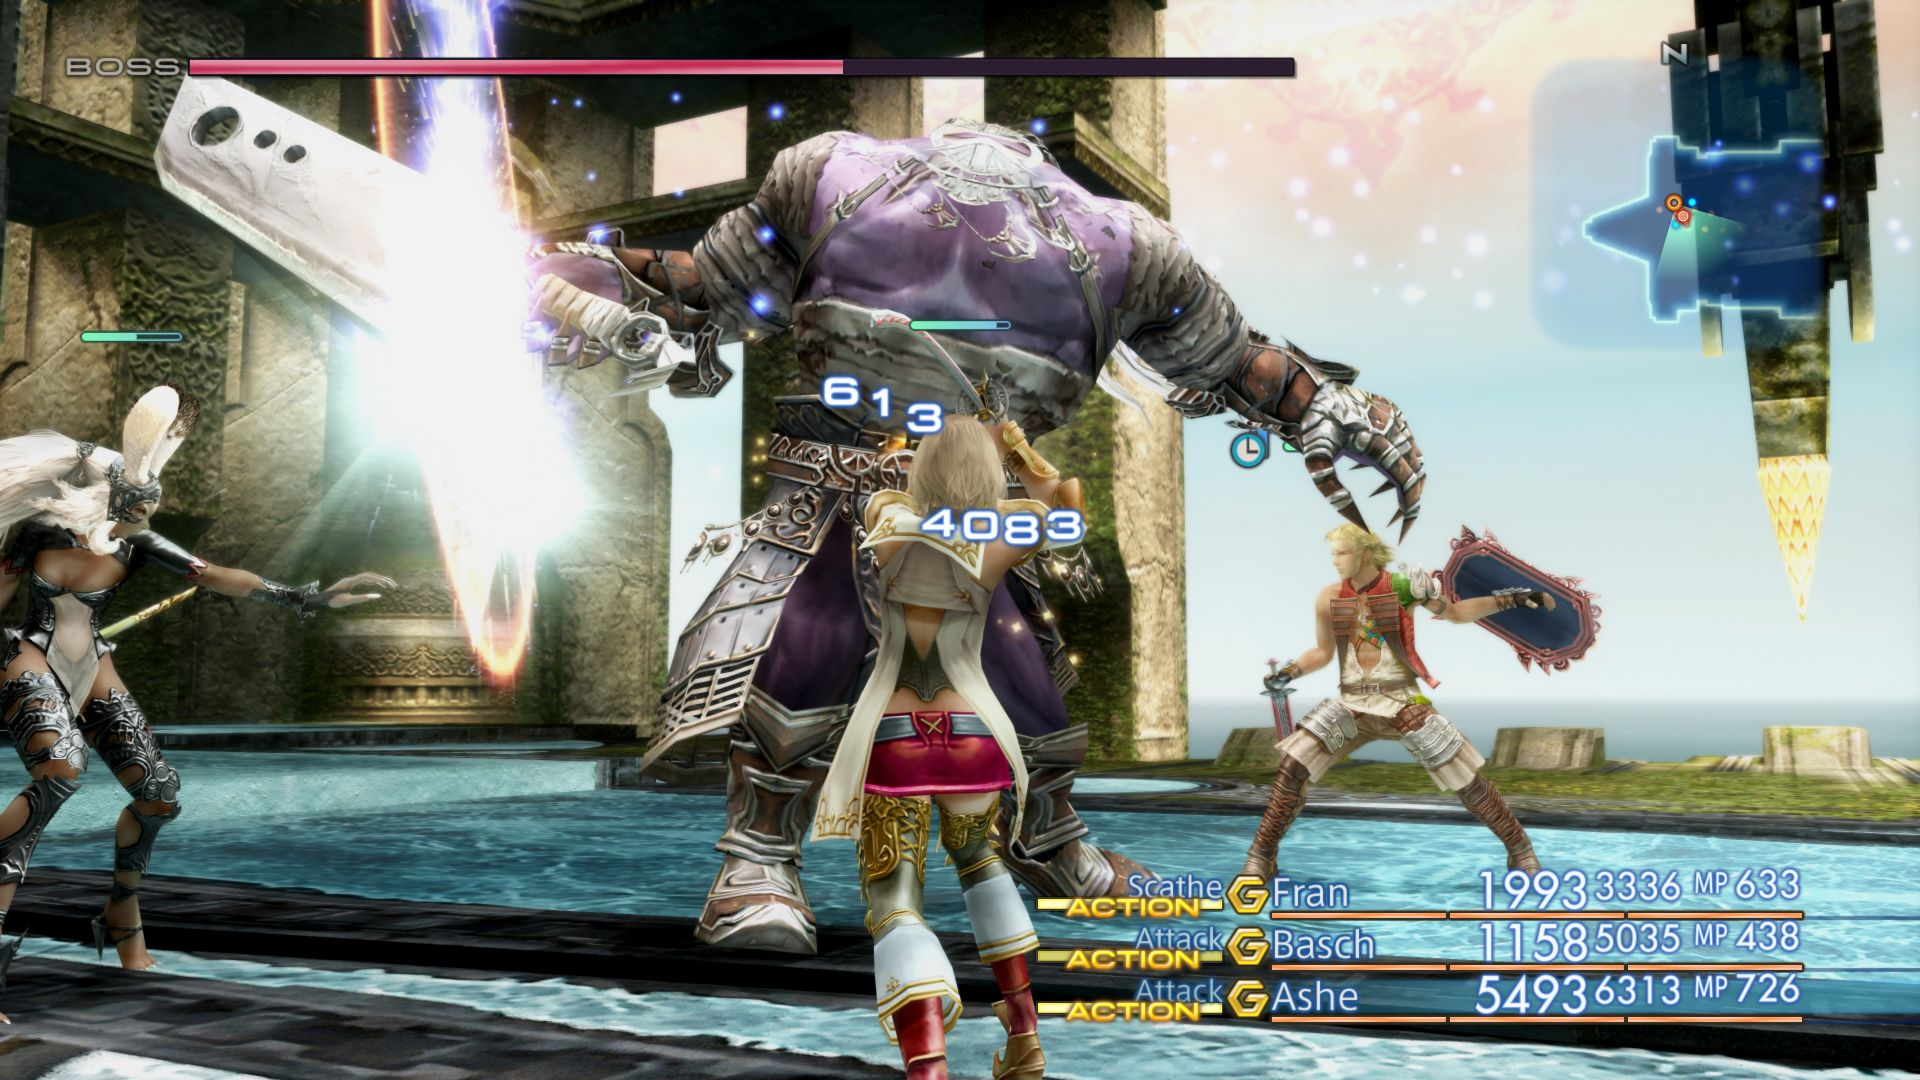 Final Fantasy Xii The Zodiac Age S Pc Launch Trailer Proves How